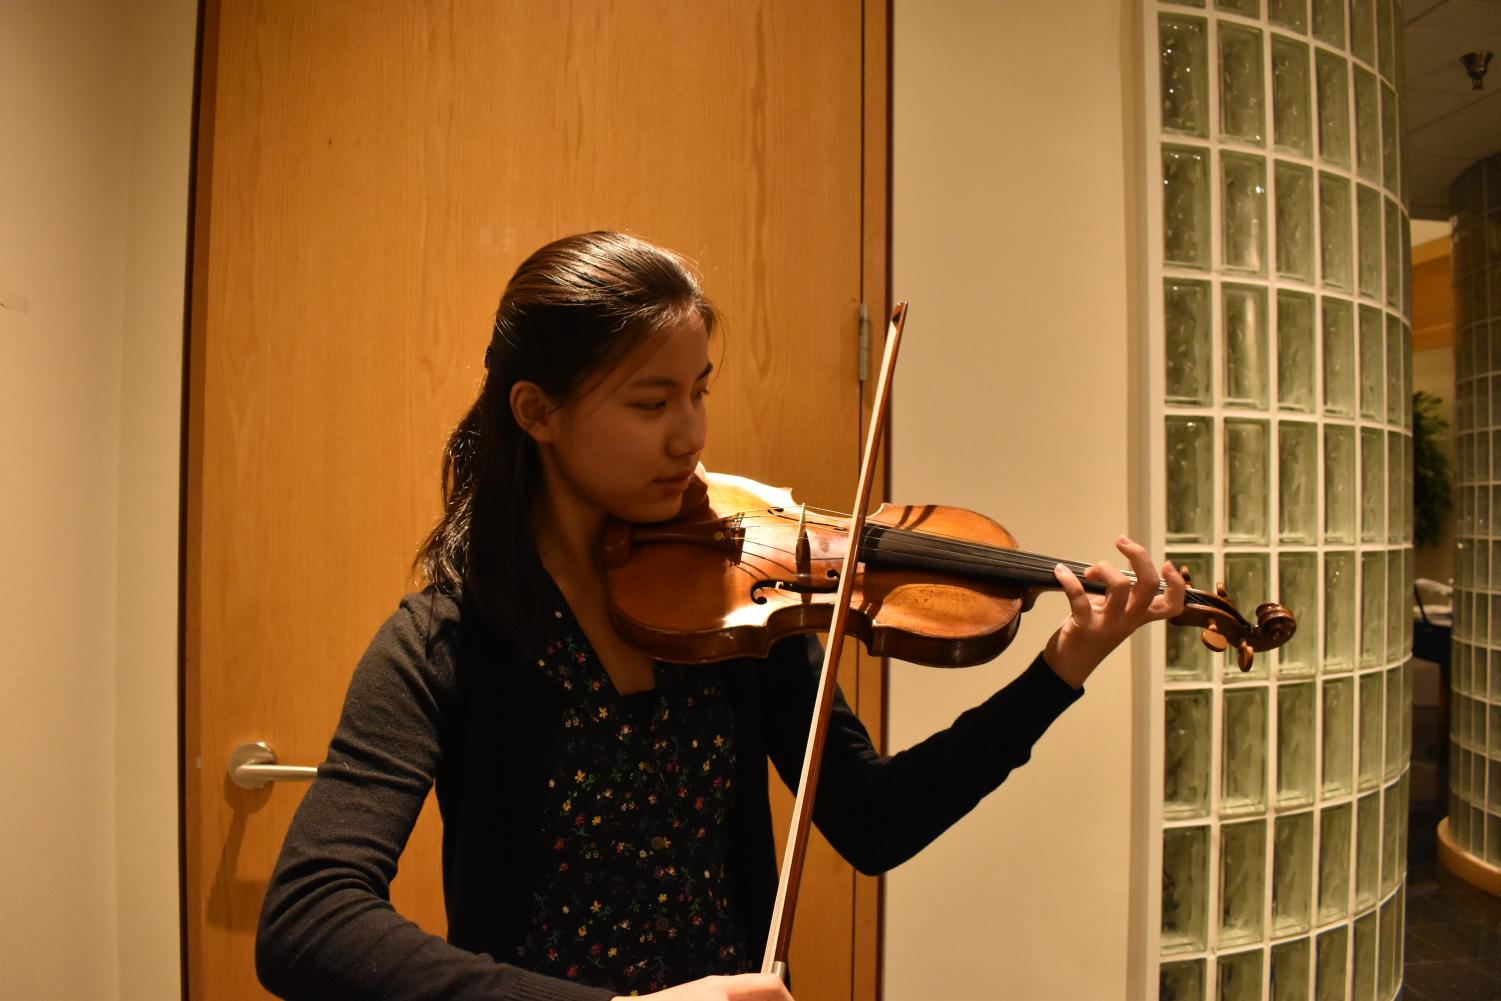 Carley Mitchell '22 plays the violin